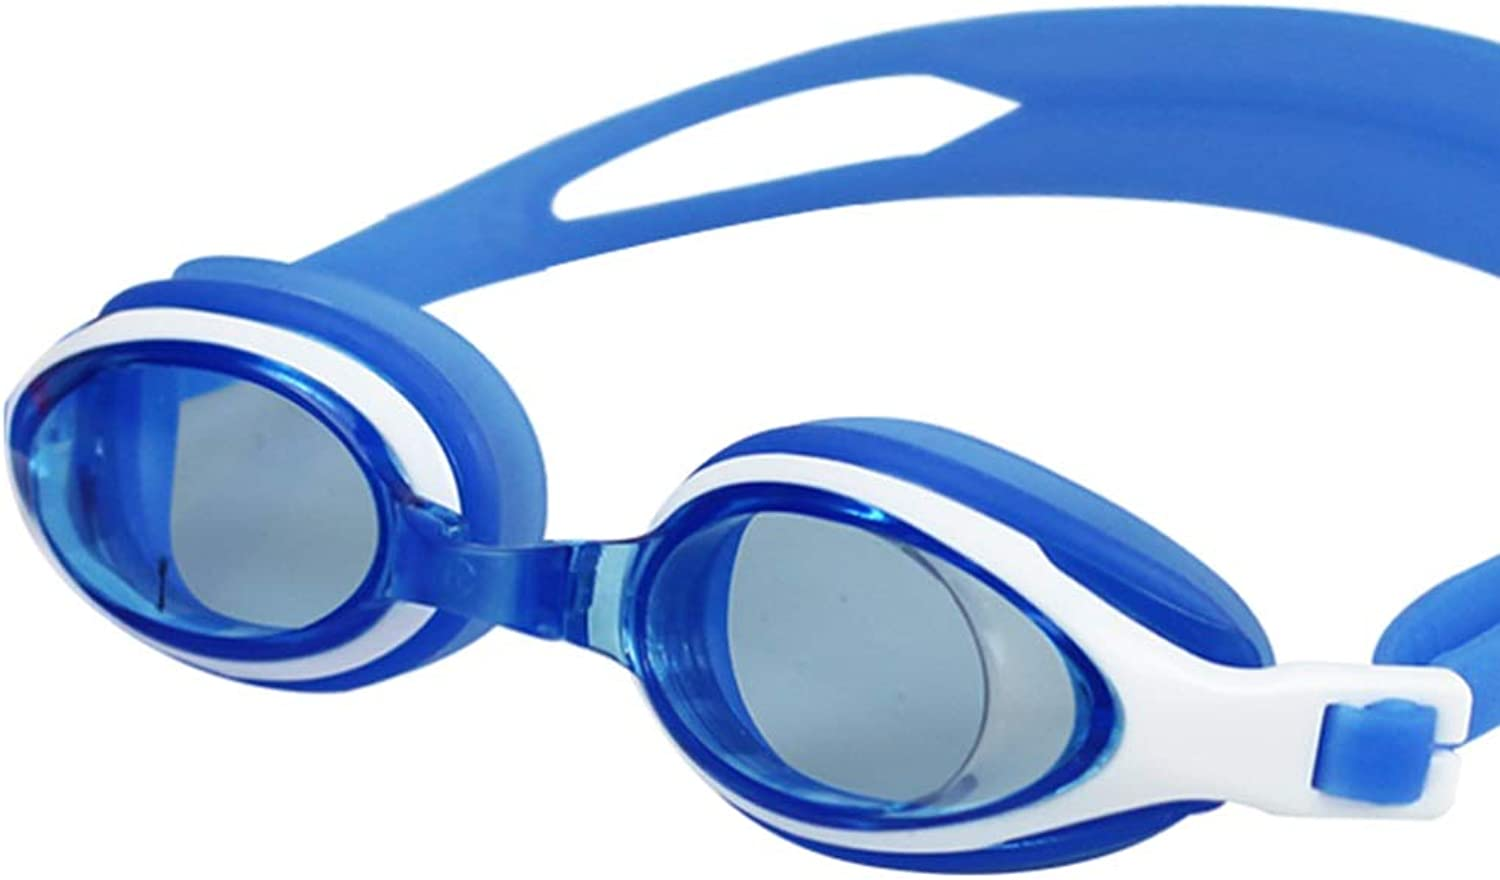 Swimming Goggles Big Box HD Waterproof AntiFog Men's Ladies Casual Teen Goggles (color   bluee)